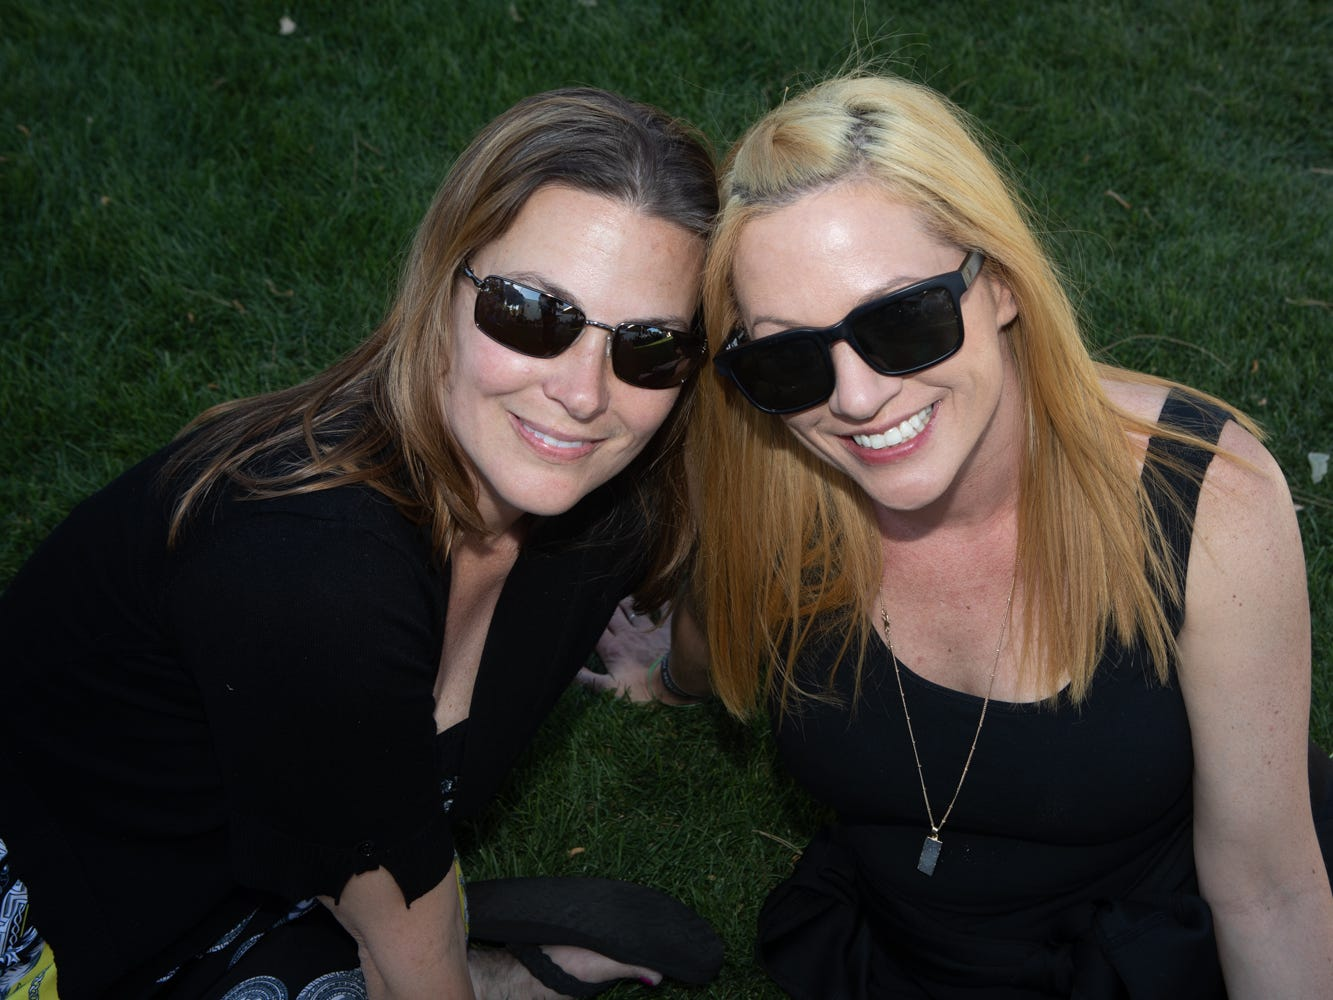 Shaded areas kept people cool at the Scottsdale Culinary Festival on April 13, 2019.